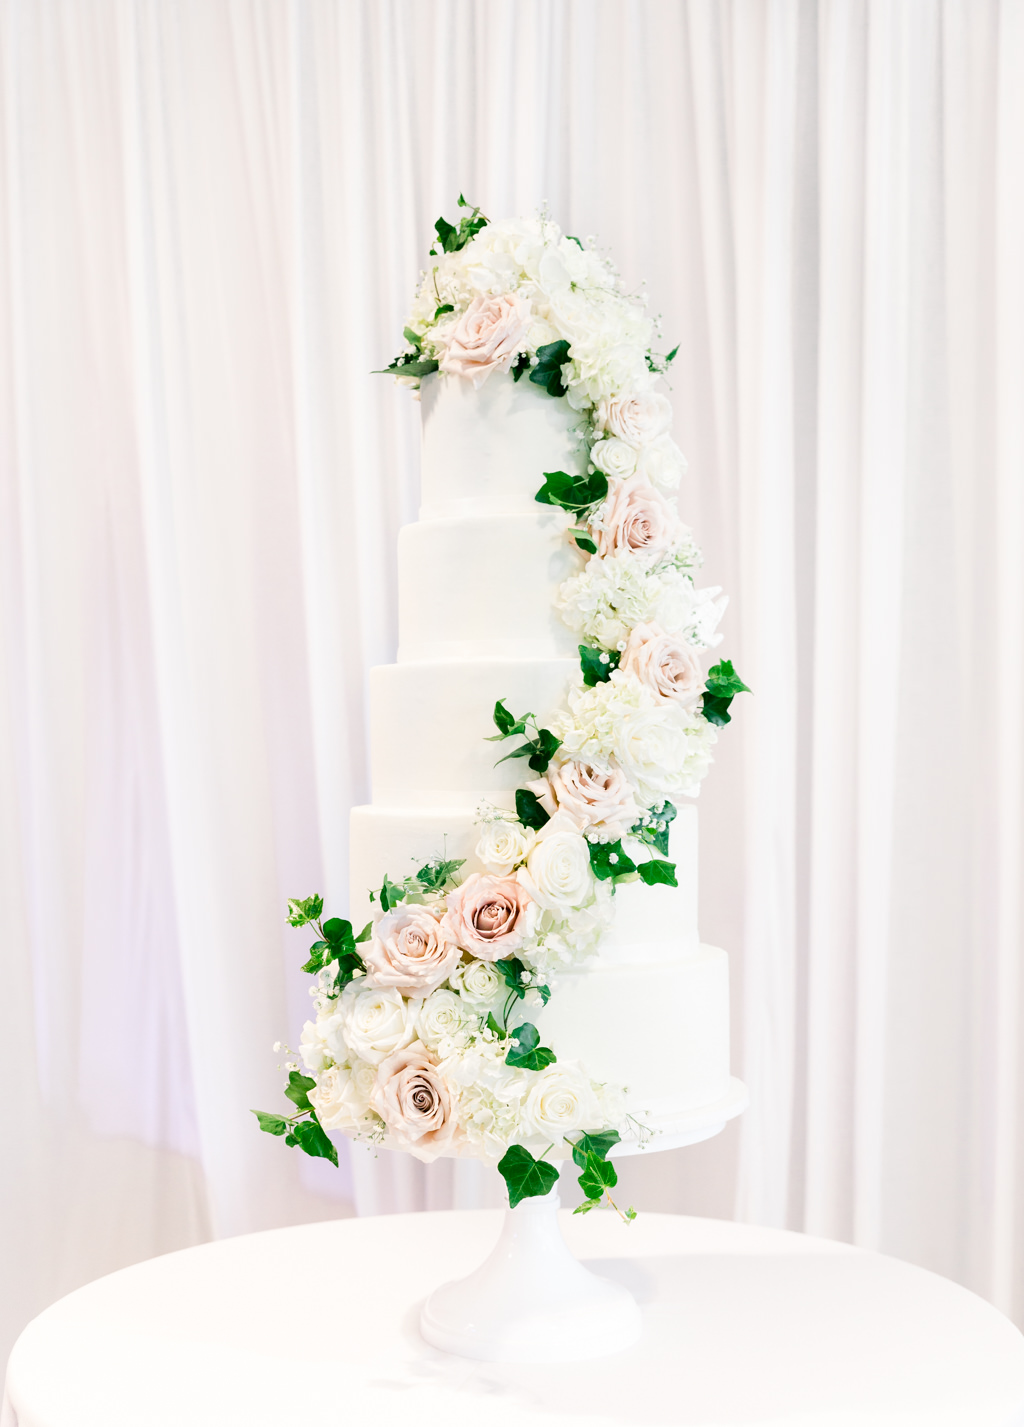 Elegant Classic Six Tier Round White Wedding Cake with Cascading White Hydrangeas, Blush Pink Roses and Greenery Leaves   Tampa Wedding Baker The Artistic Whisk